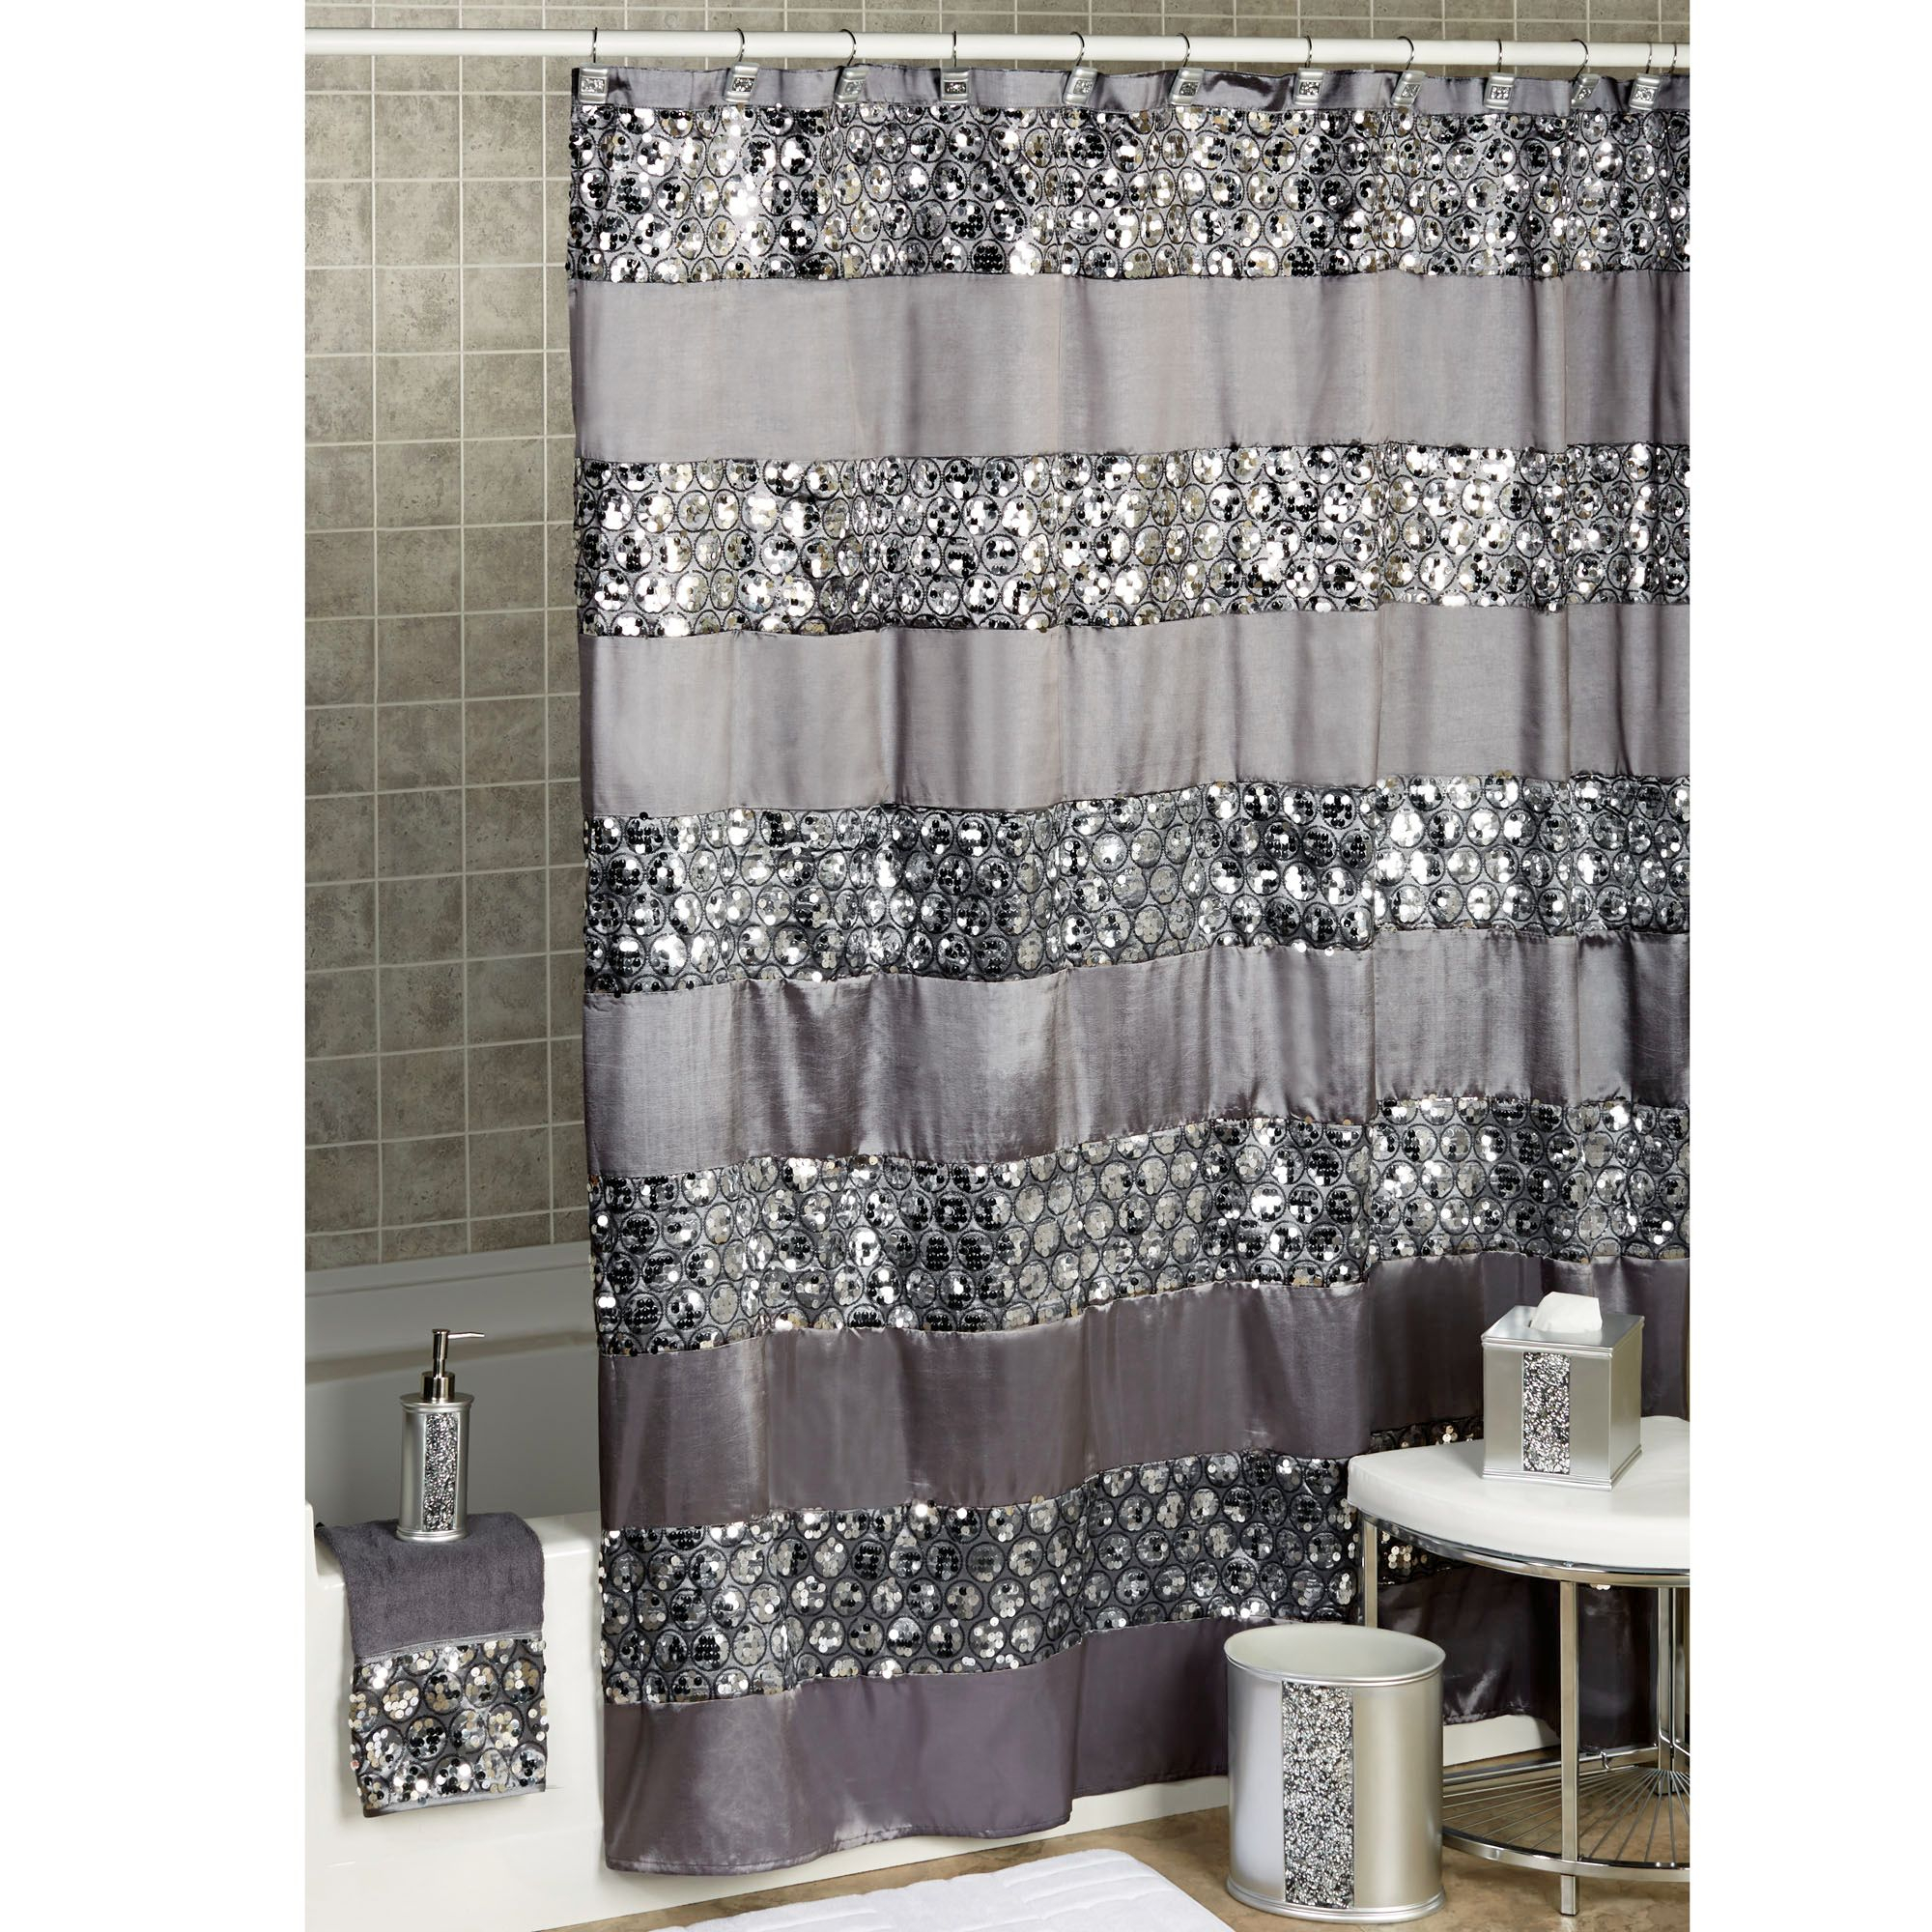 Black Solid Sequin Shower Curtain • Shower Curtains Ideas